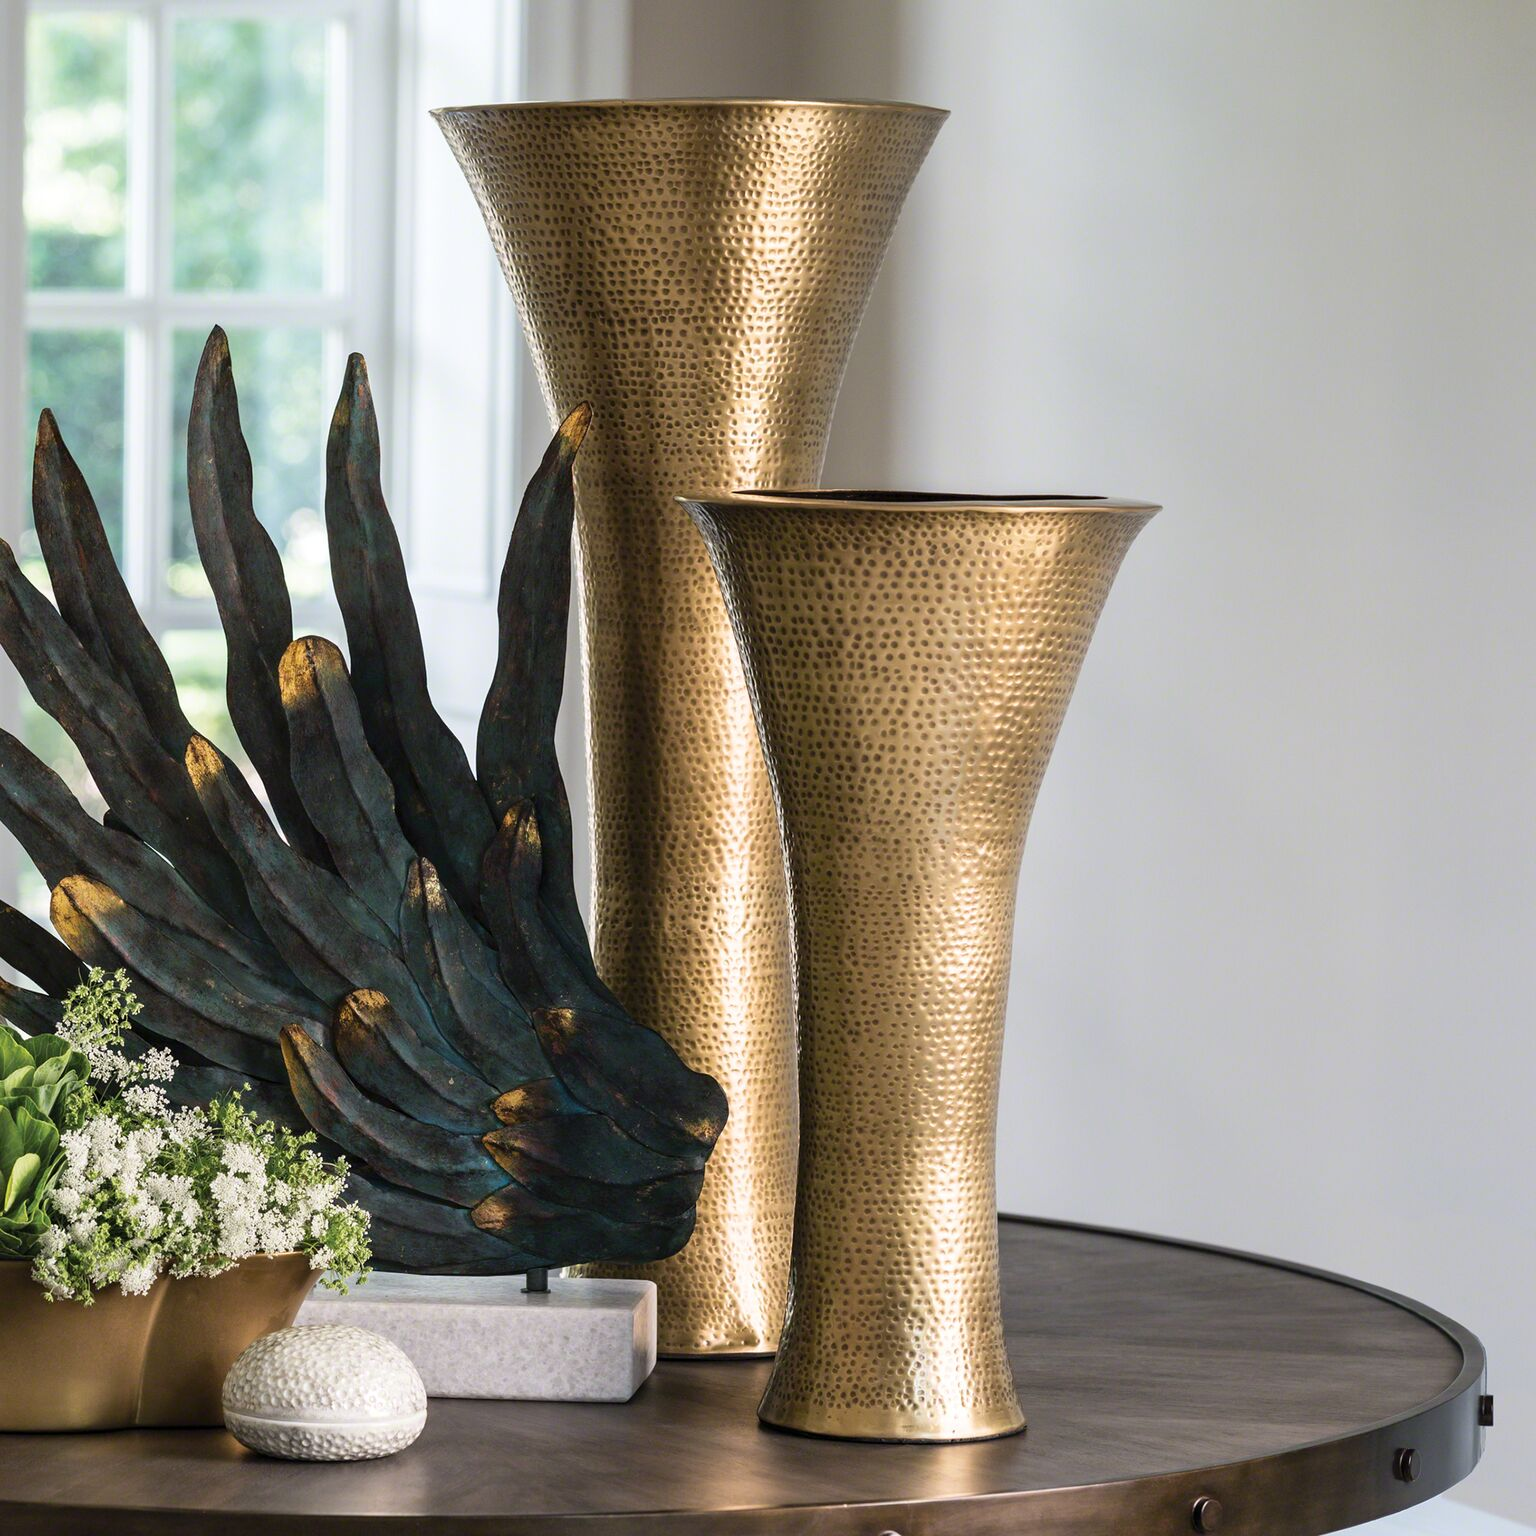 Vase - Tall Brass w/rush fee